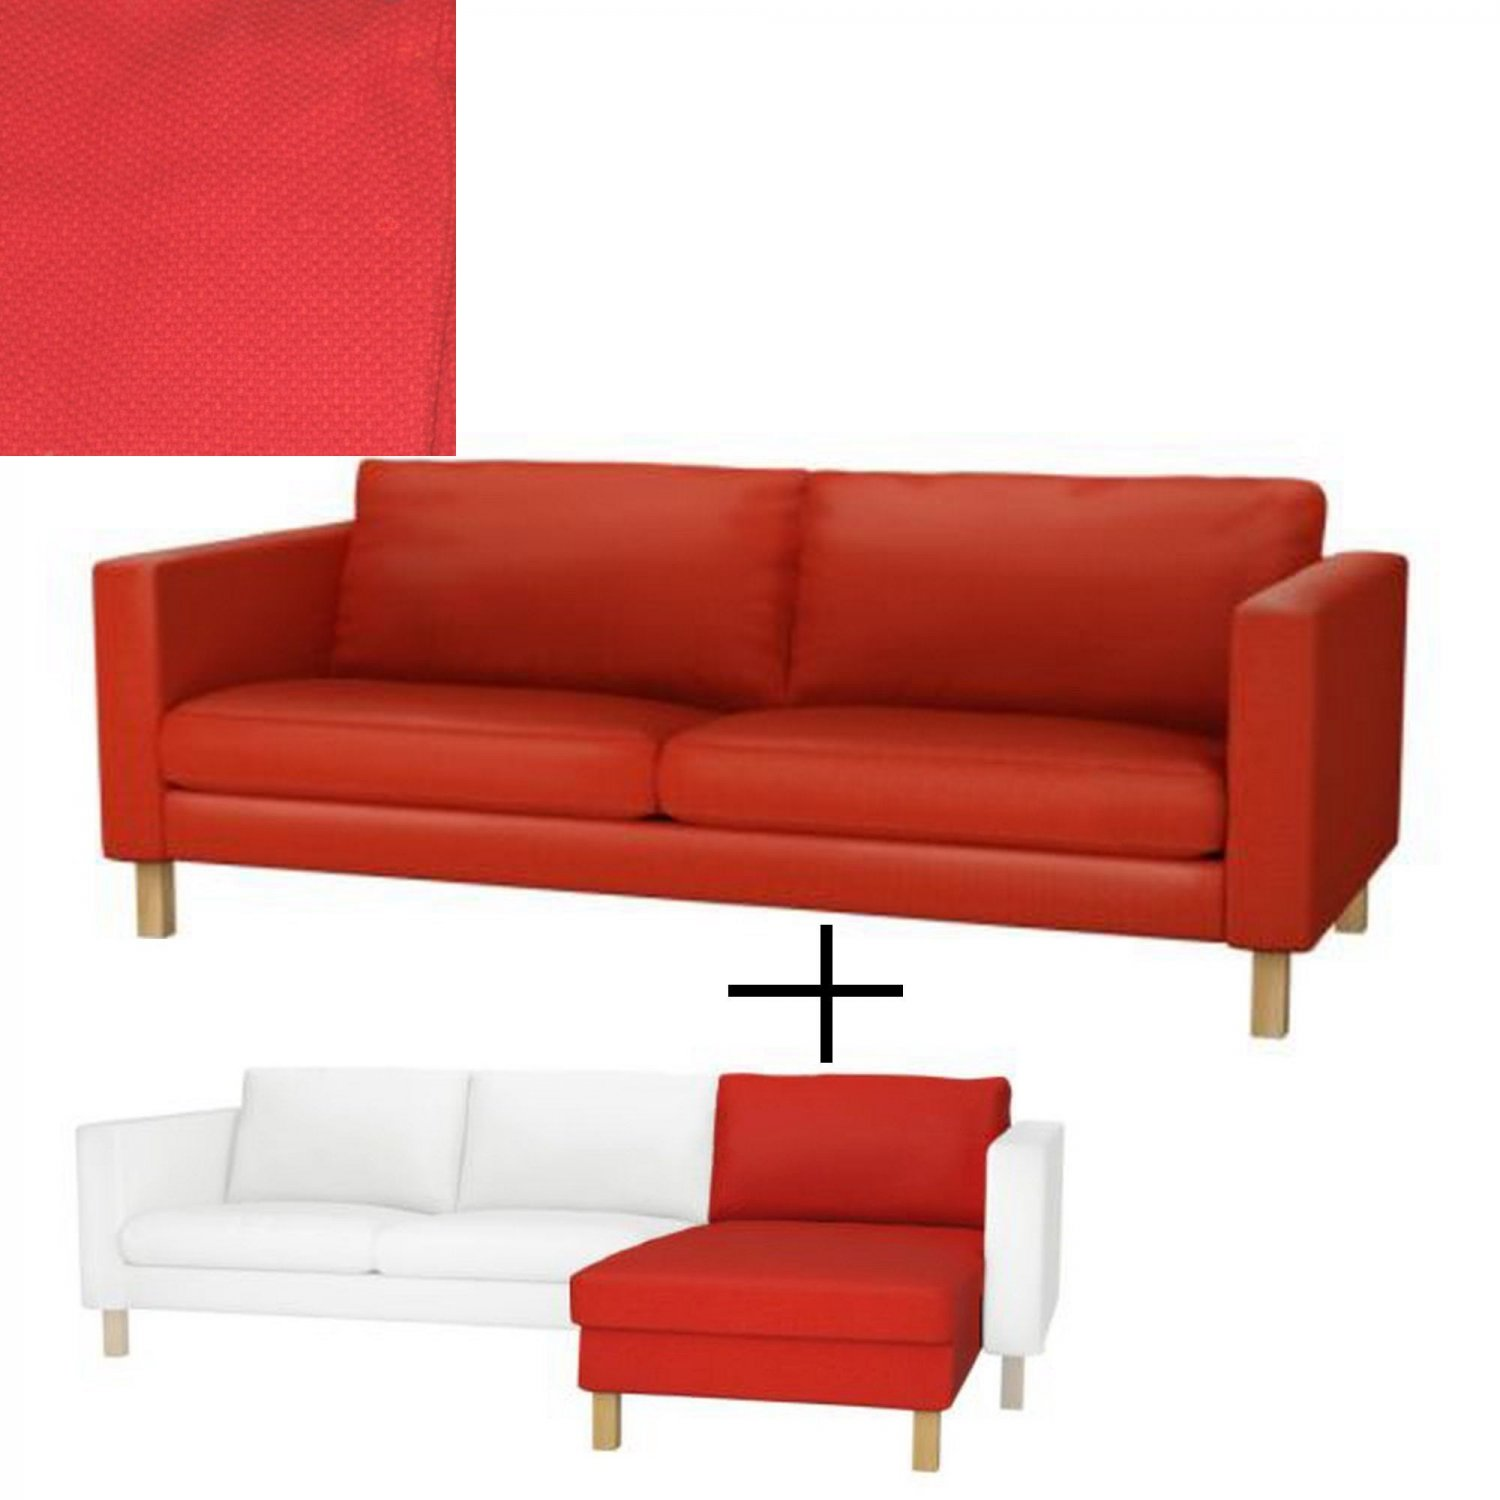 Ikea Karlstad 3 Seat Sofa And Chaise Slipcover Cover Korndal Red Add On Xmas Last One